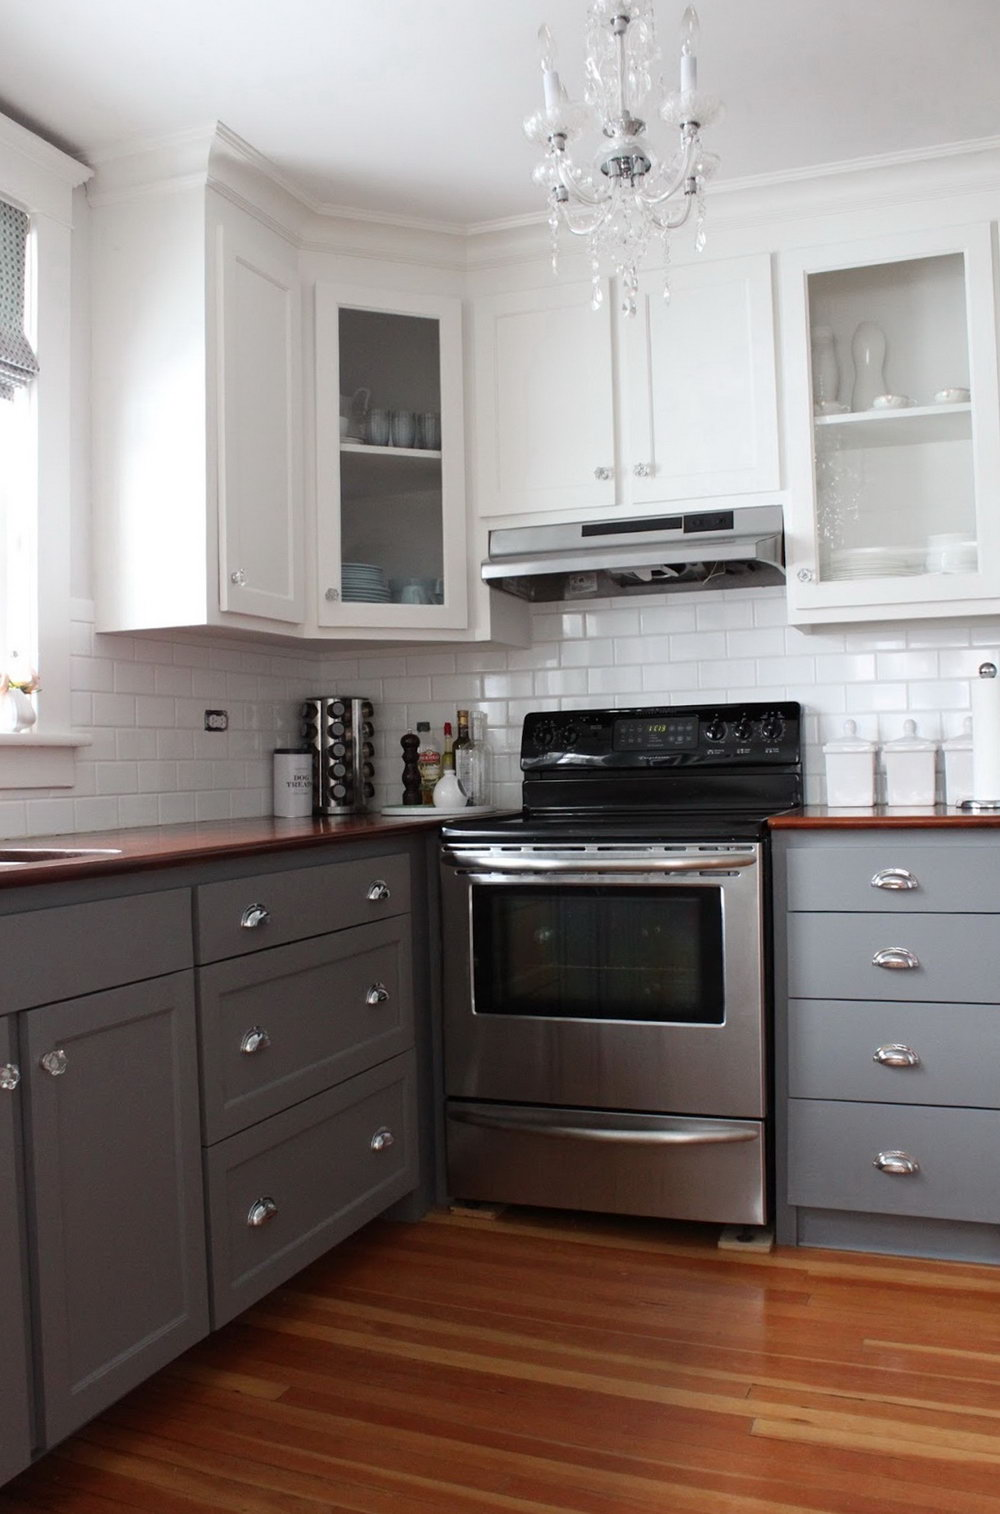 Easiest Way To Paint Kitchen Cabinets White